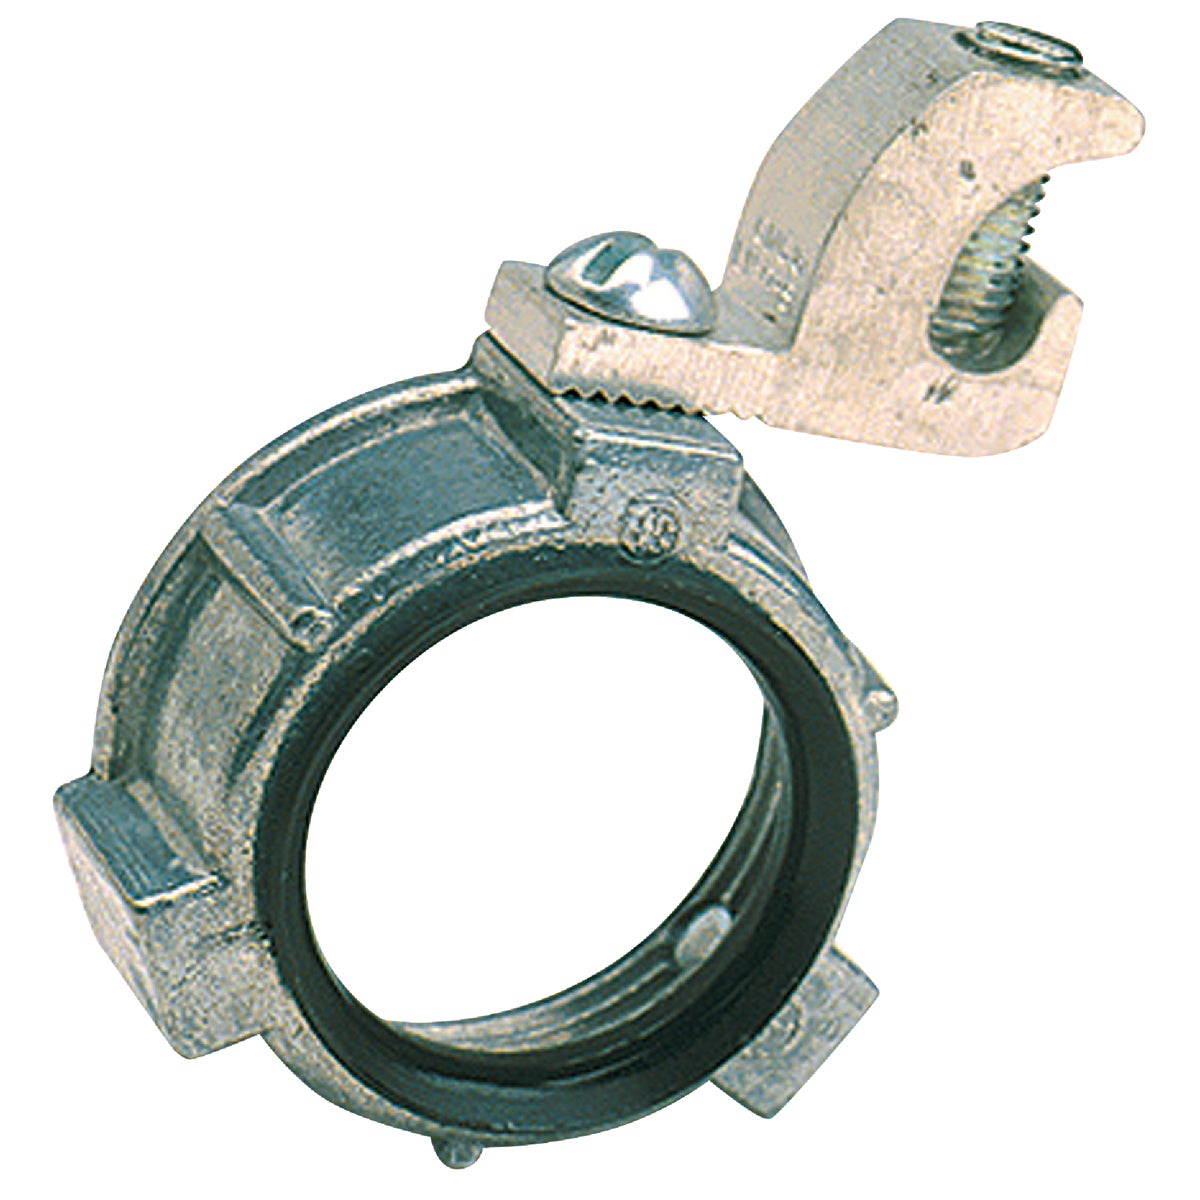 "1-1/4"" BUSHING - BG204A1 by Thomas & Betts"